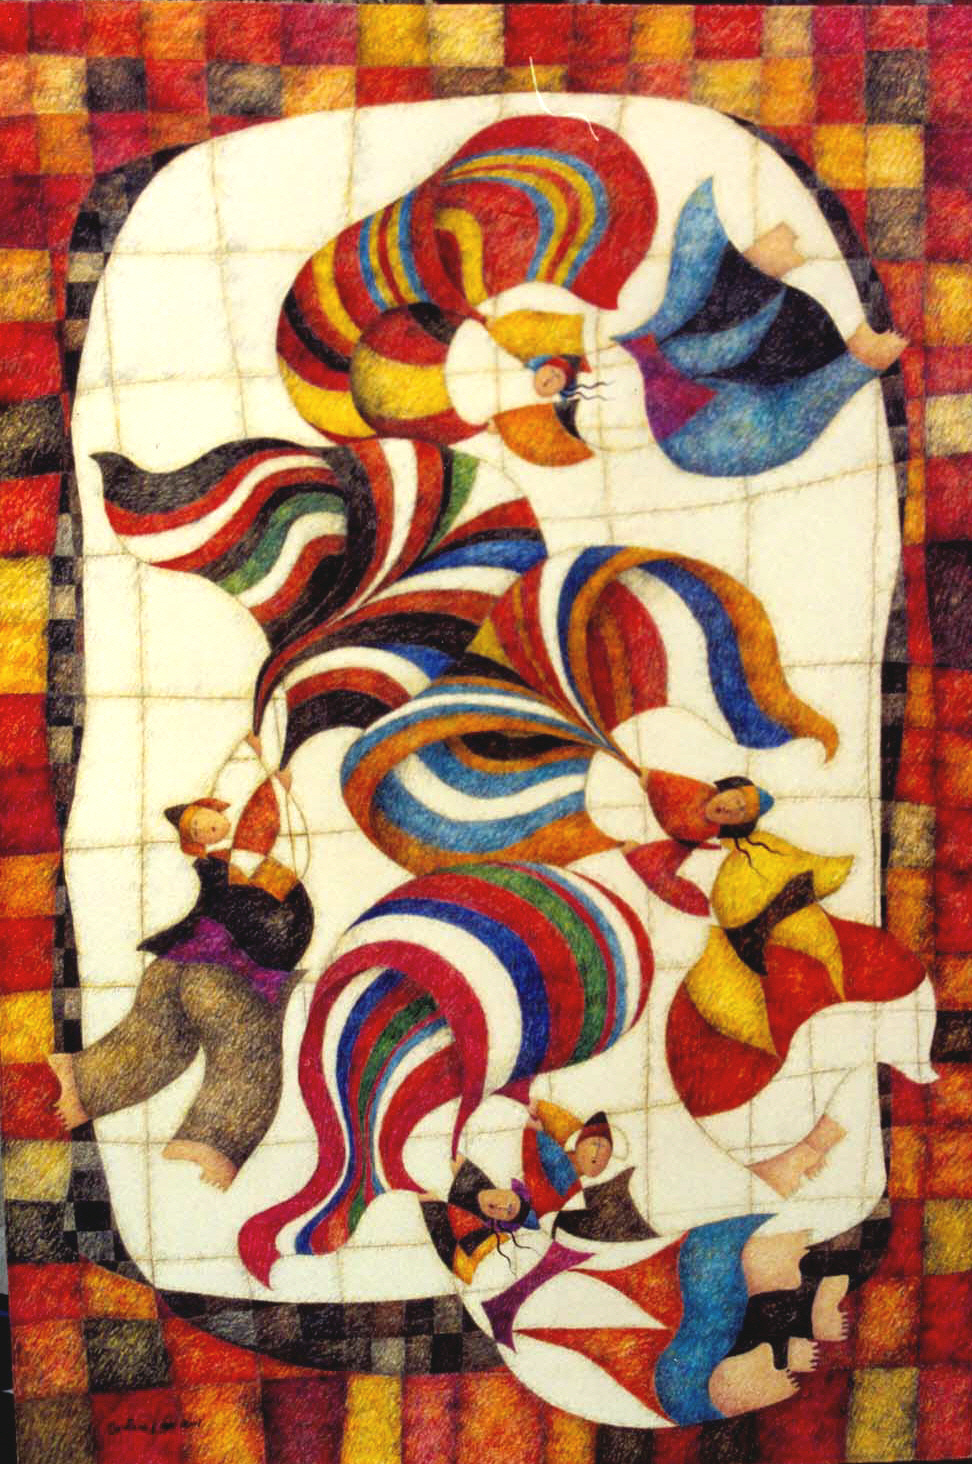 Pujllay, 2001 (Andean party)